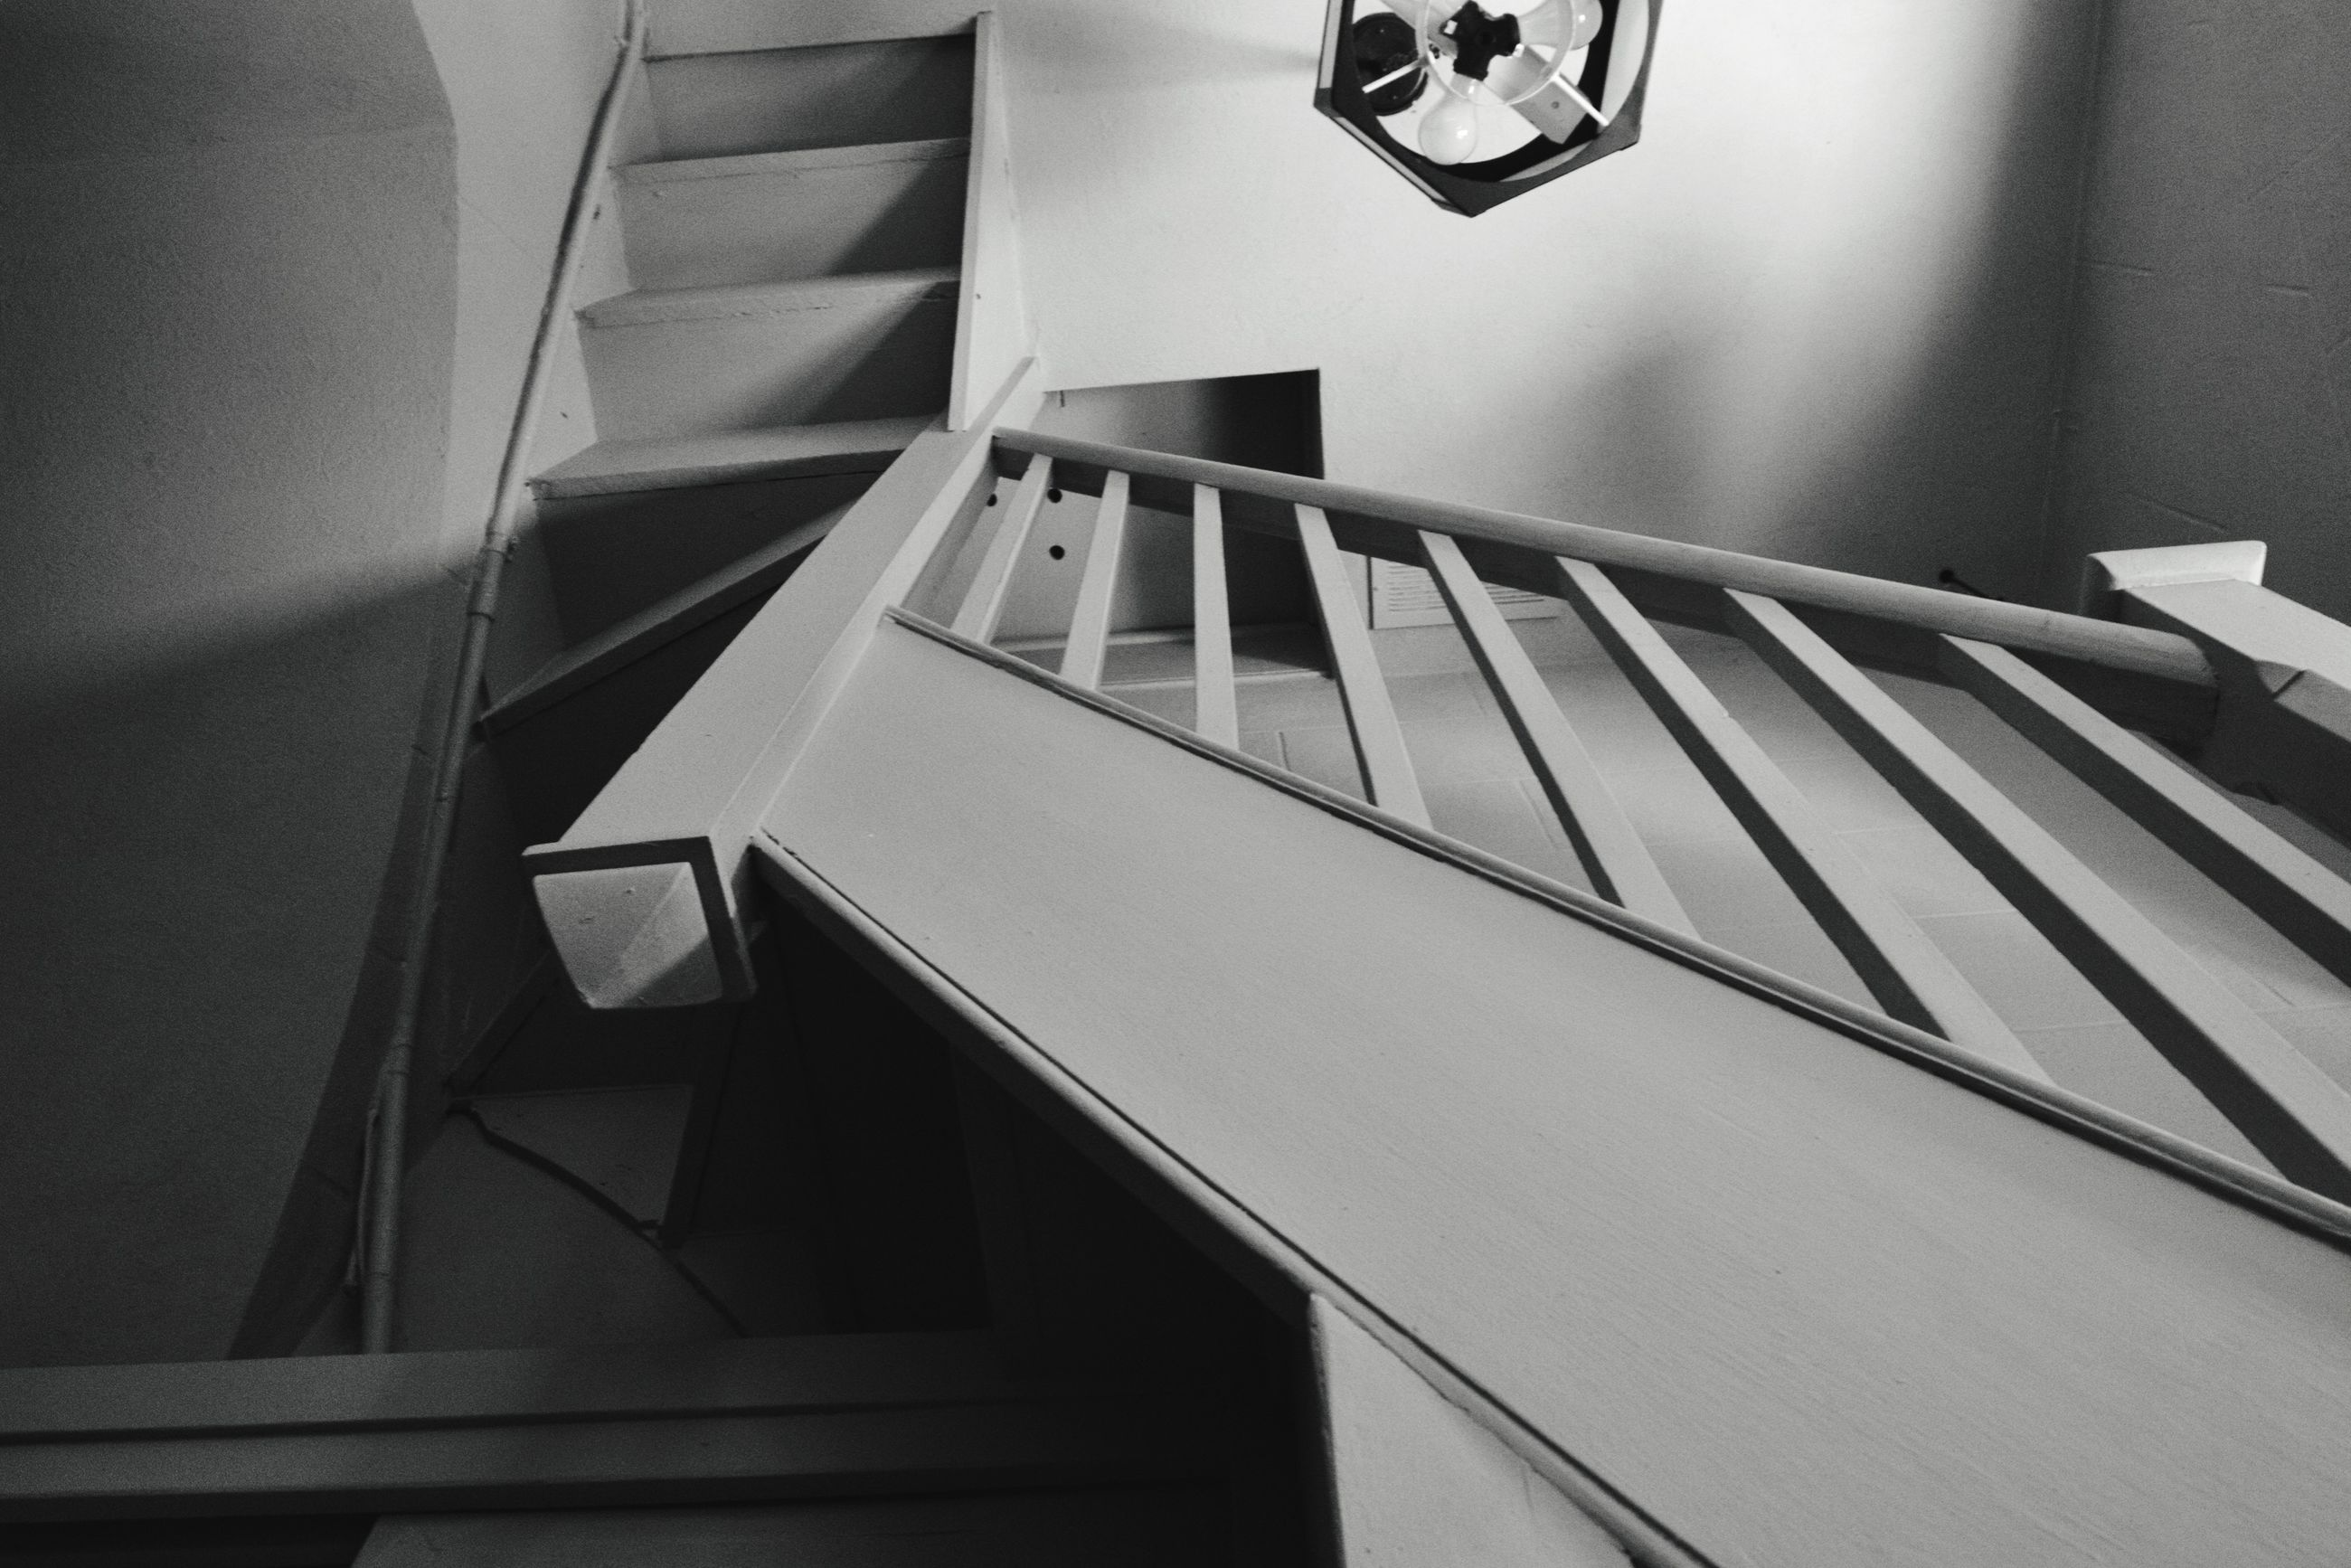 indoors, staircase, steps, steps and staircases, no people, home interior, table, architecture, built structure, close-up, hand rail, home showcase interior, day